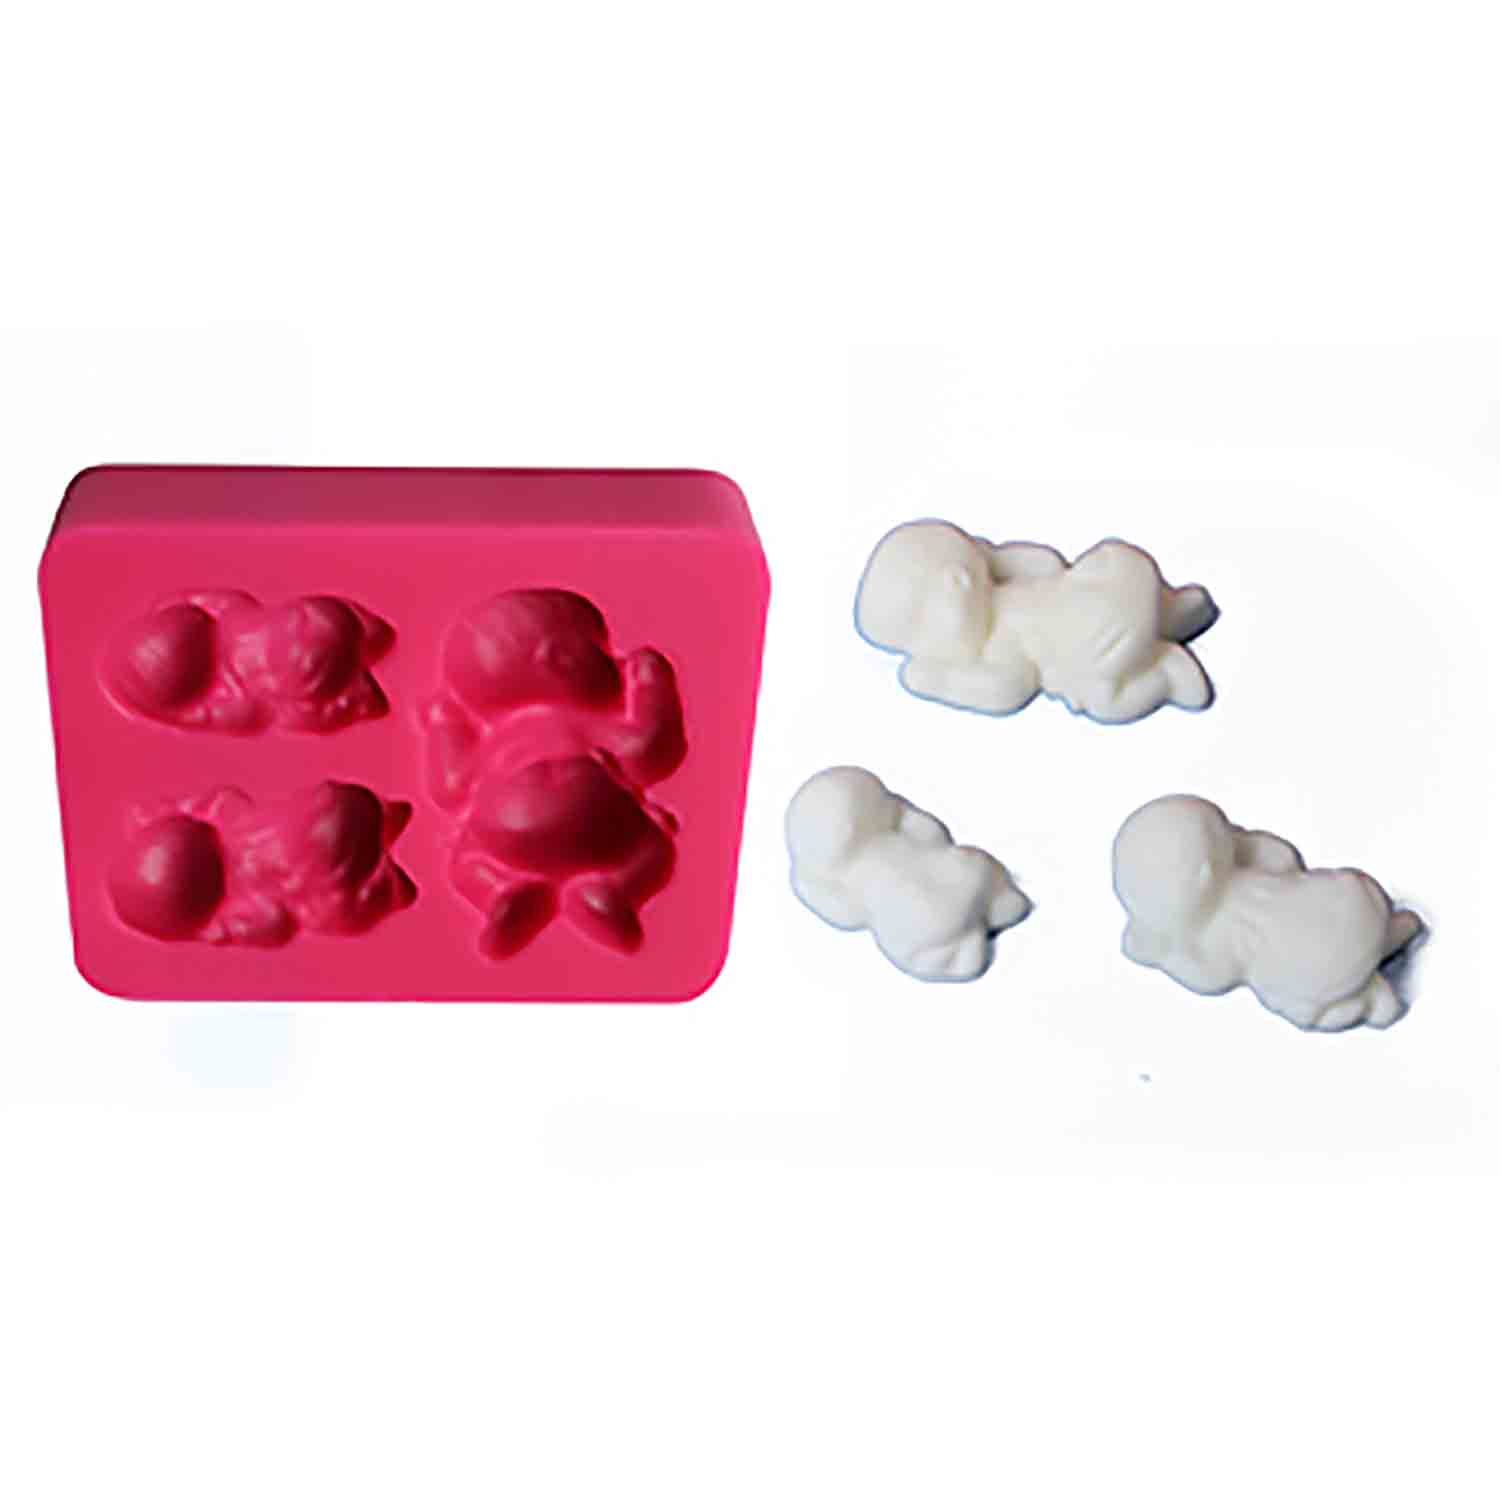 Sleeping Baby Silicone Mold - 3 Cavities